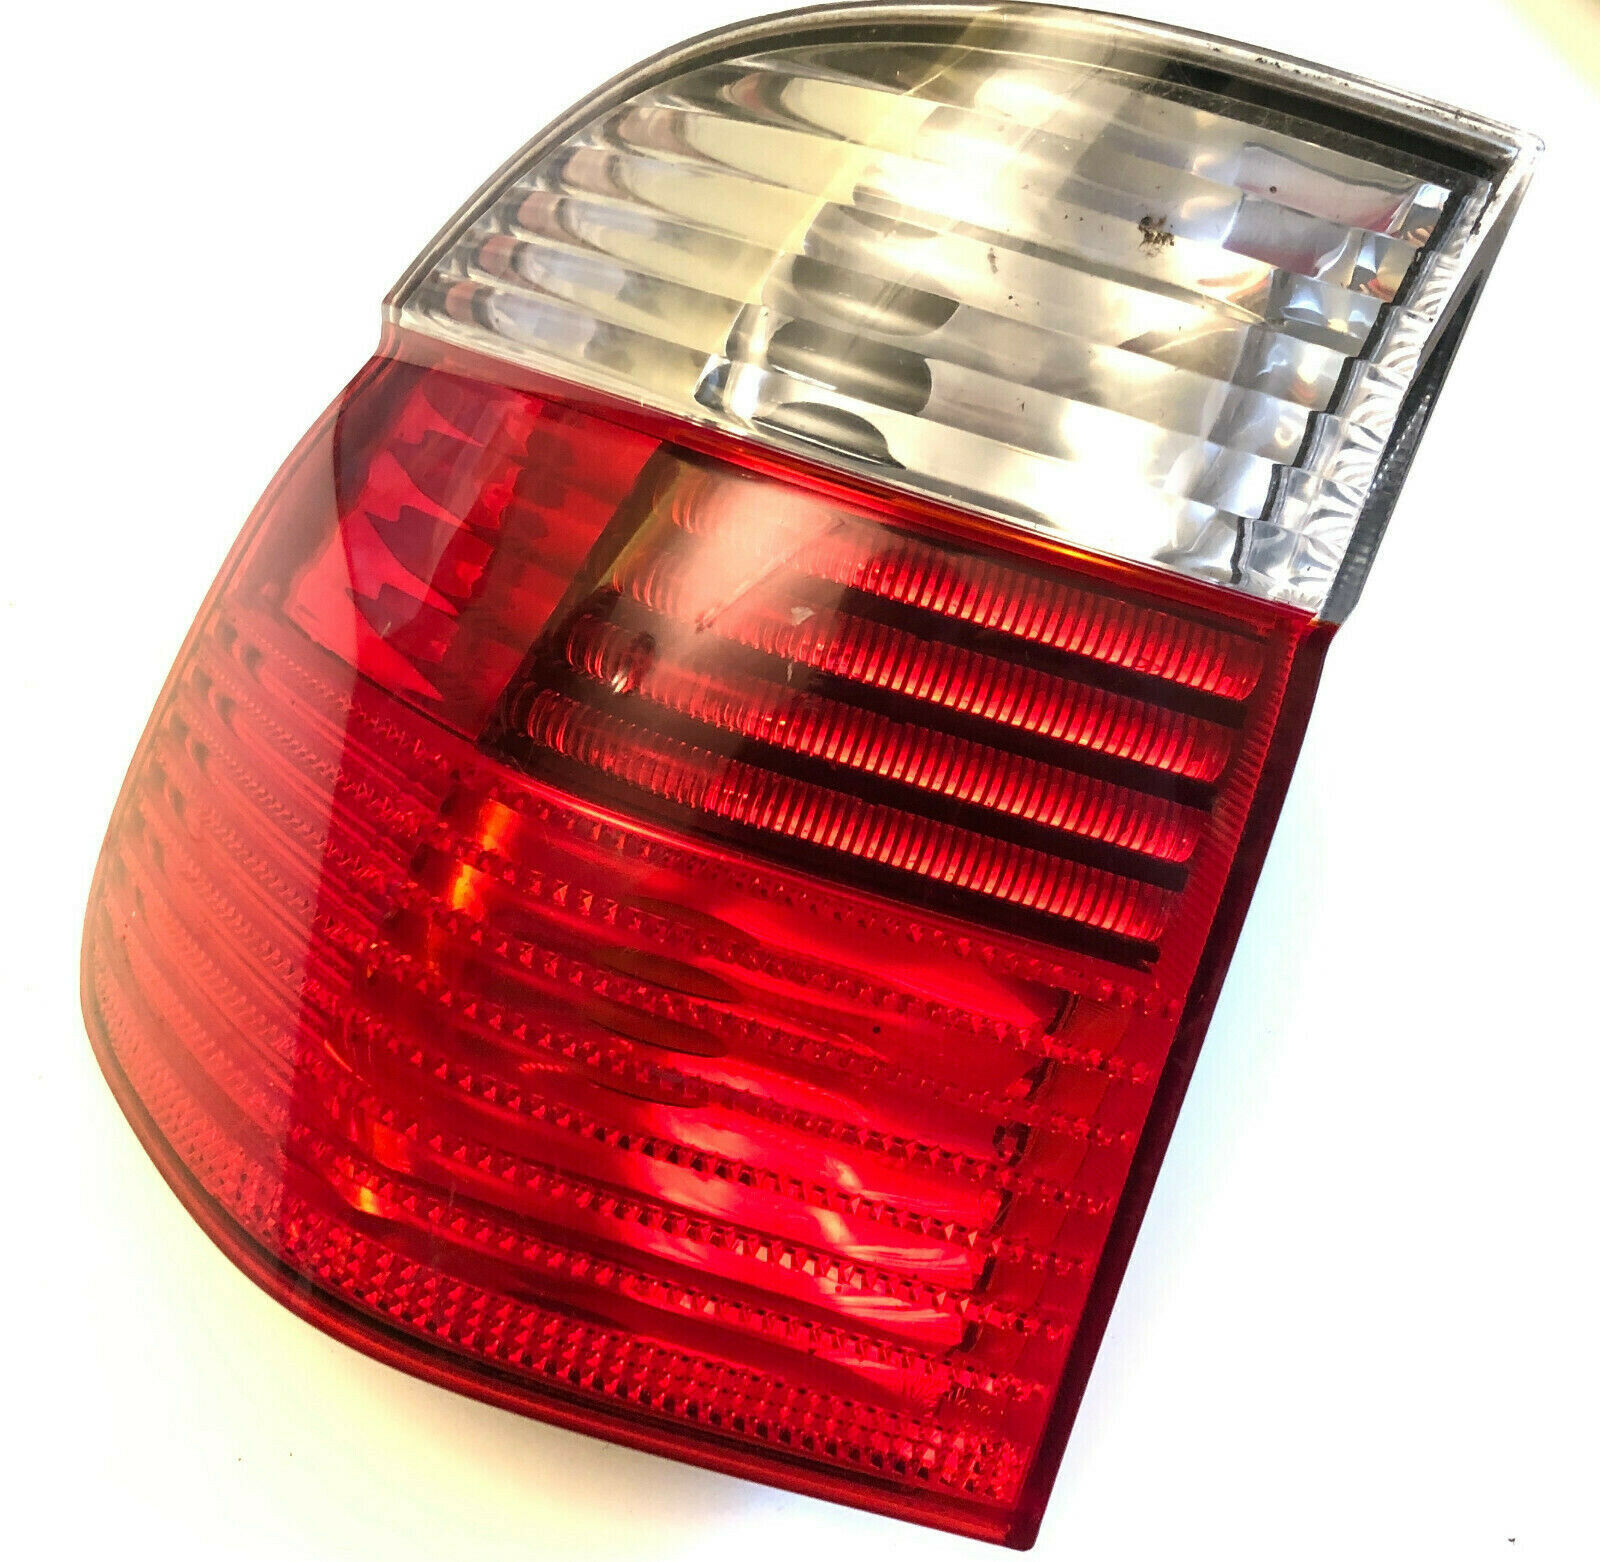 Genuine Bmw E39 Touring 2003 Left Tail Light Facelift 6902531 Oem Archives Midweek Com